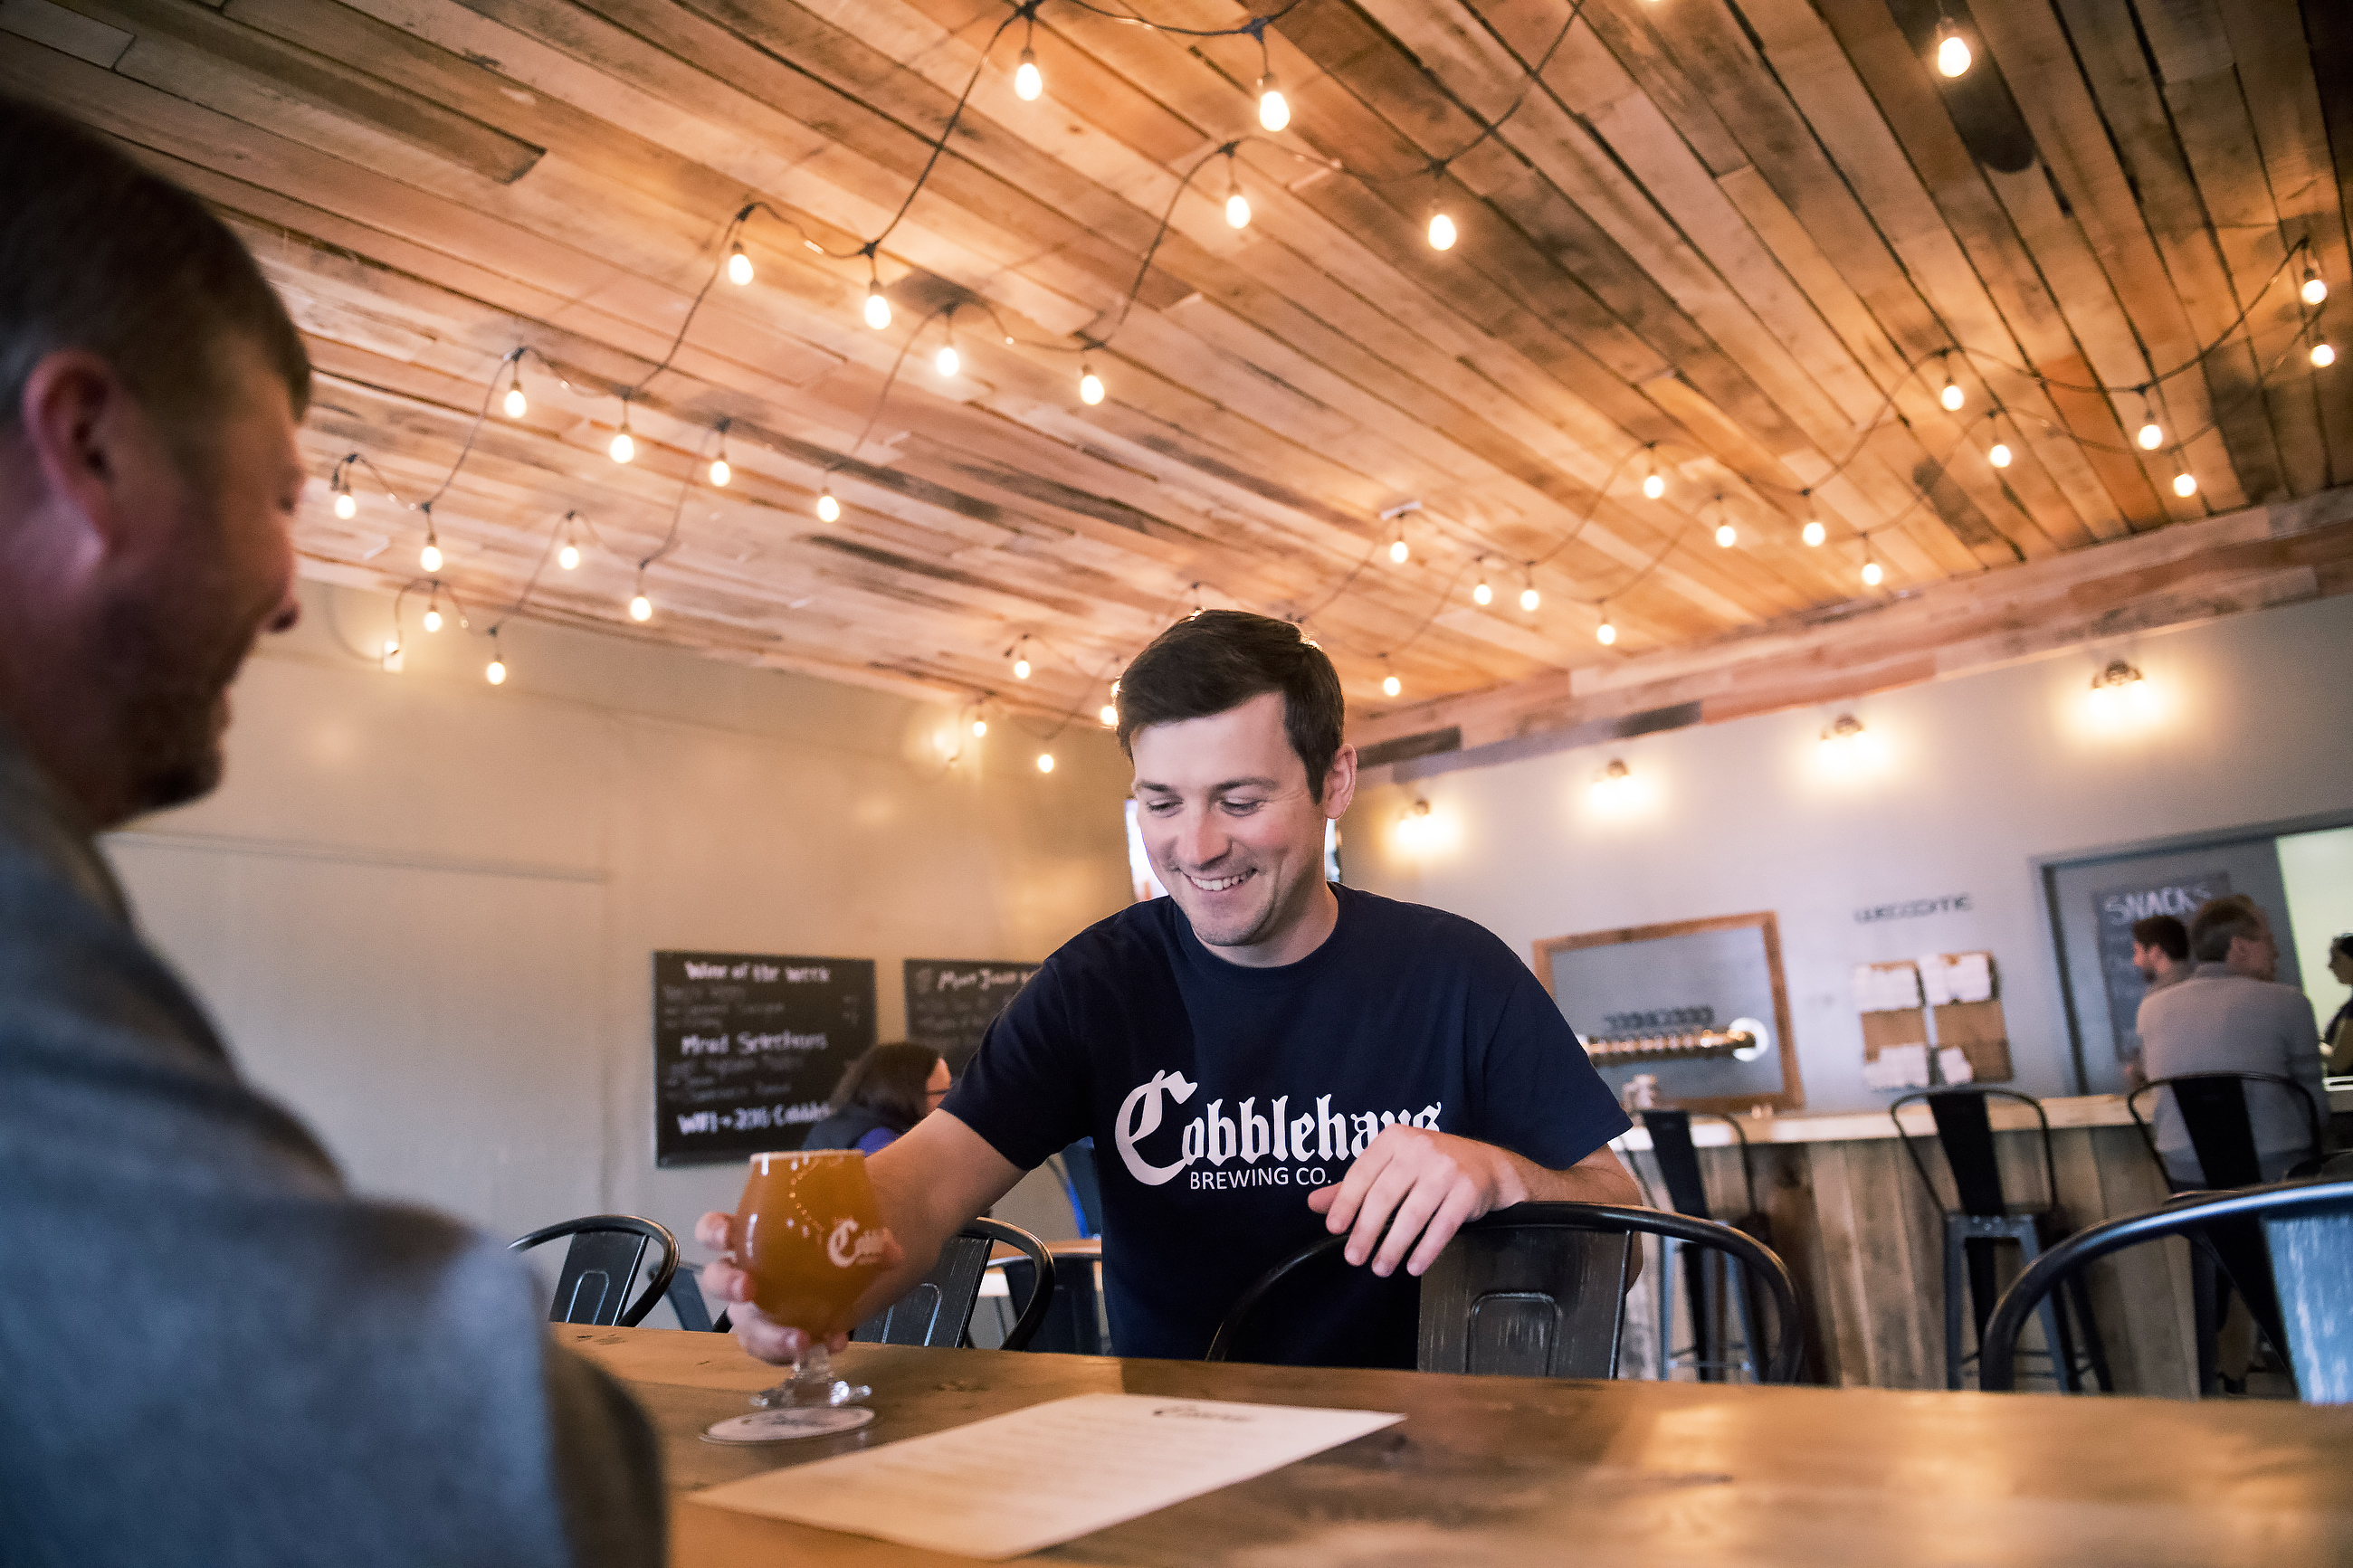 20170505scCobblehaus-03-5 Chris Kozlowski serves a customer on Saturday, May 6, 2017 at Cobblehaus Brewing Company in Coraopolis. part of an Ohio River beer trail from Pittsburgh to Beaver County. (Steph Chambers/Post-Gazette)